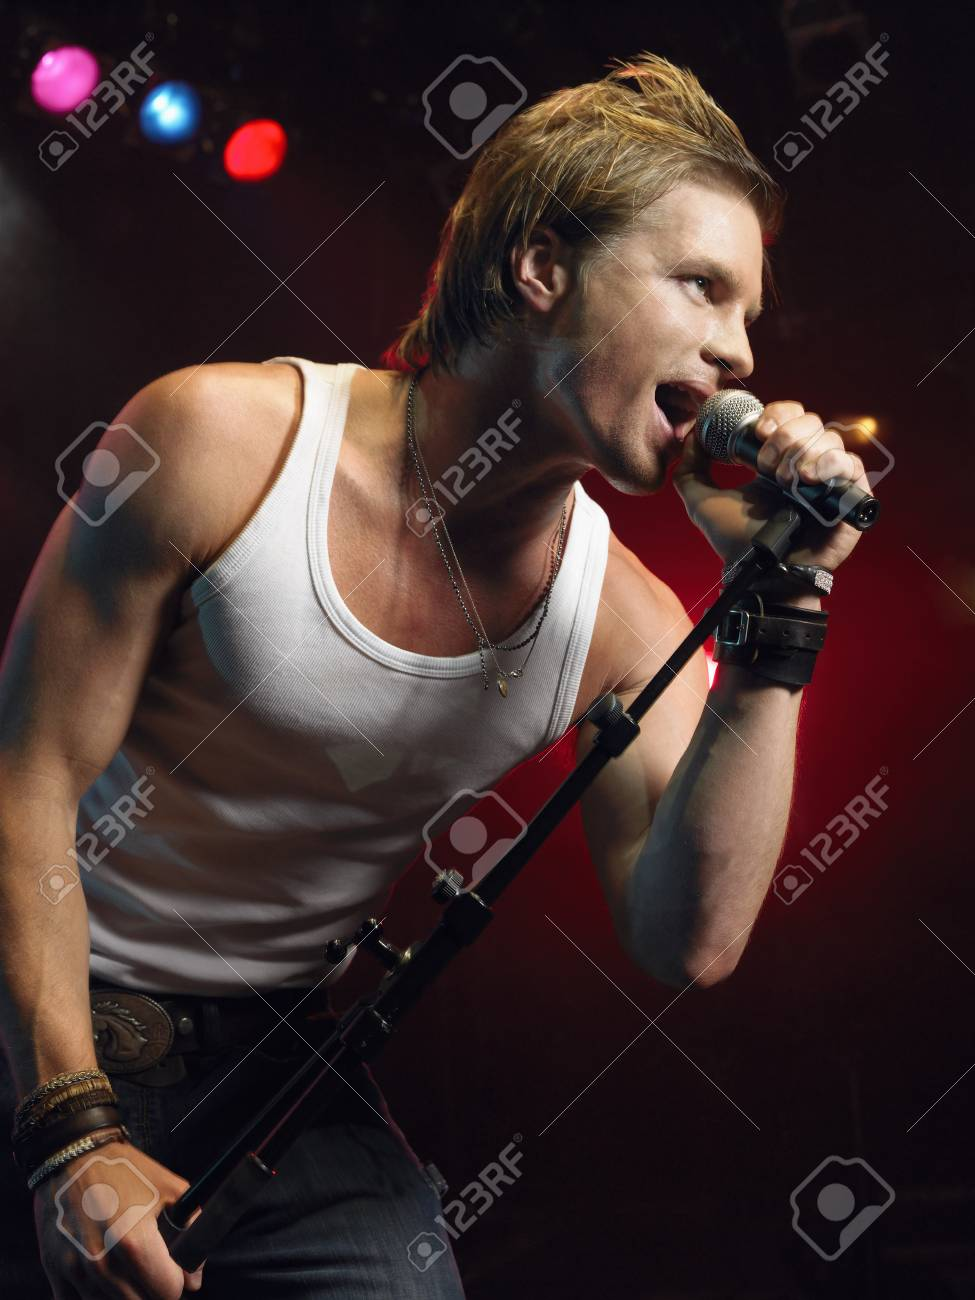 Young Man Singing into microphone on stage at Concert low angle view Stock Photo - 19326923